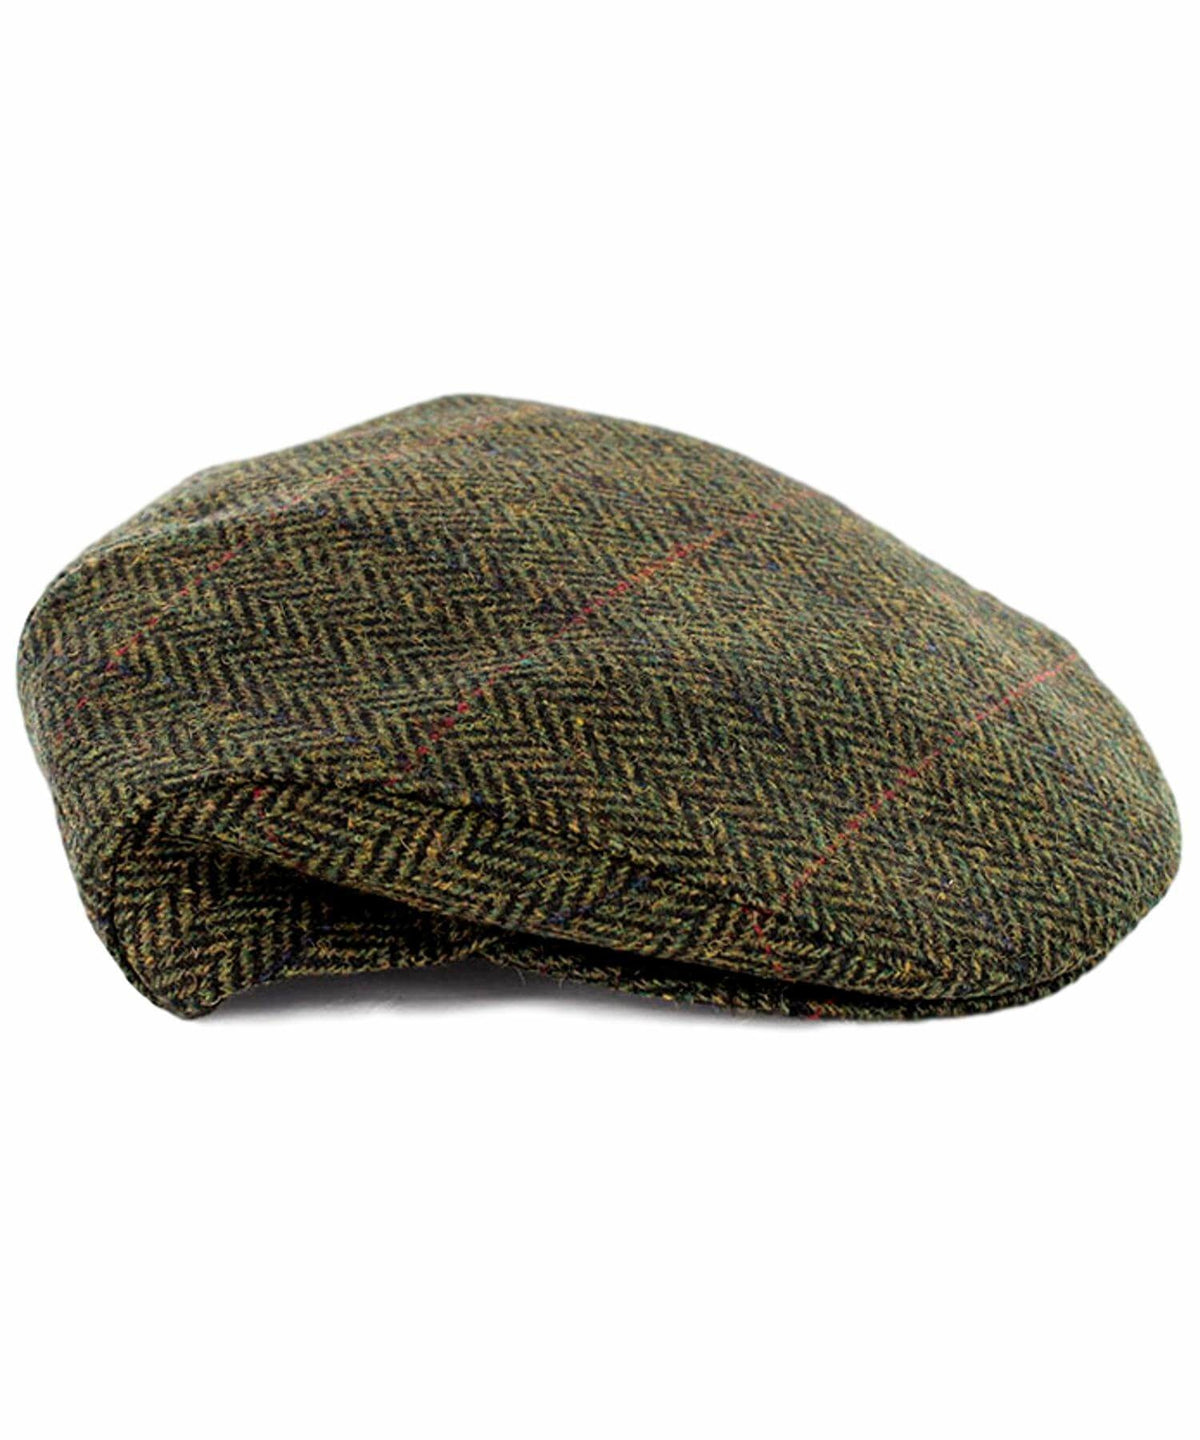 Trinity Cap - Moss - [Mucros Weavers] - Mens Hats & Headwear - Irish Gifts